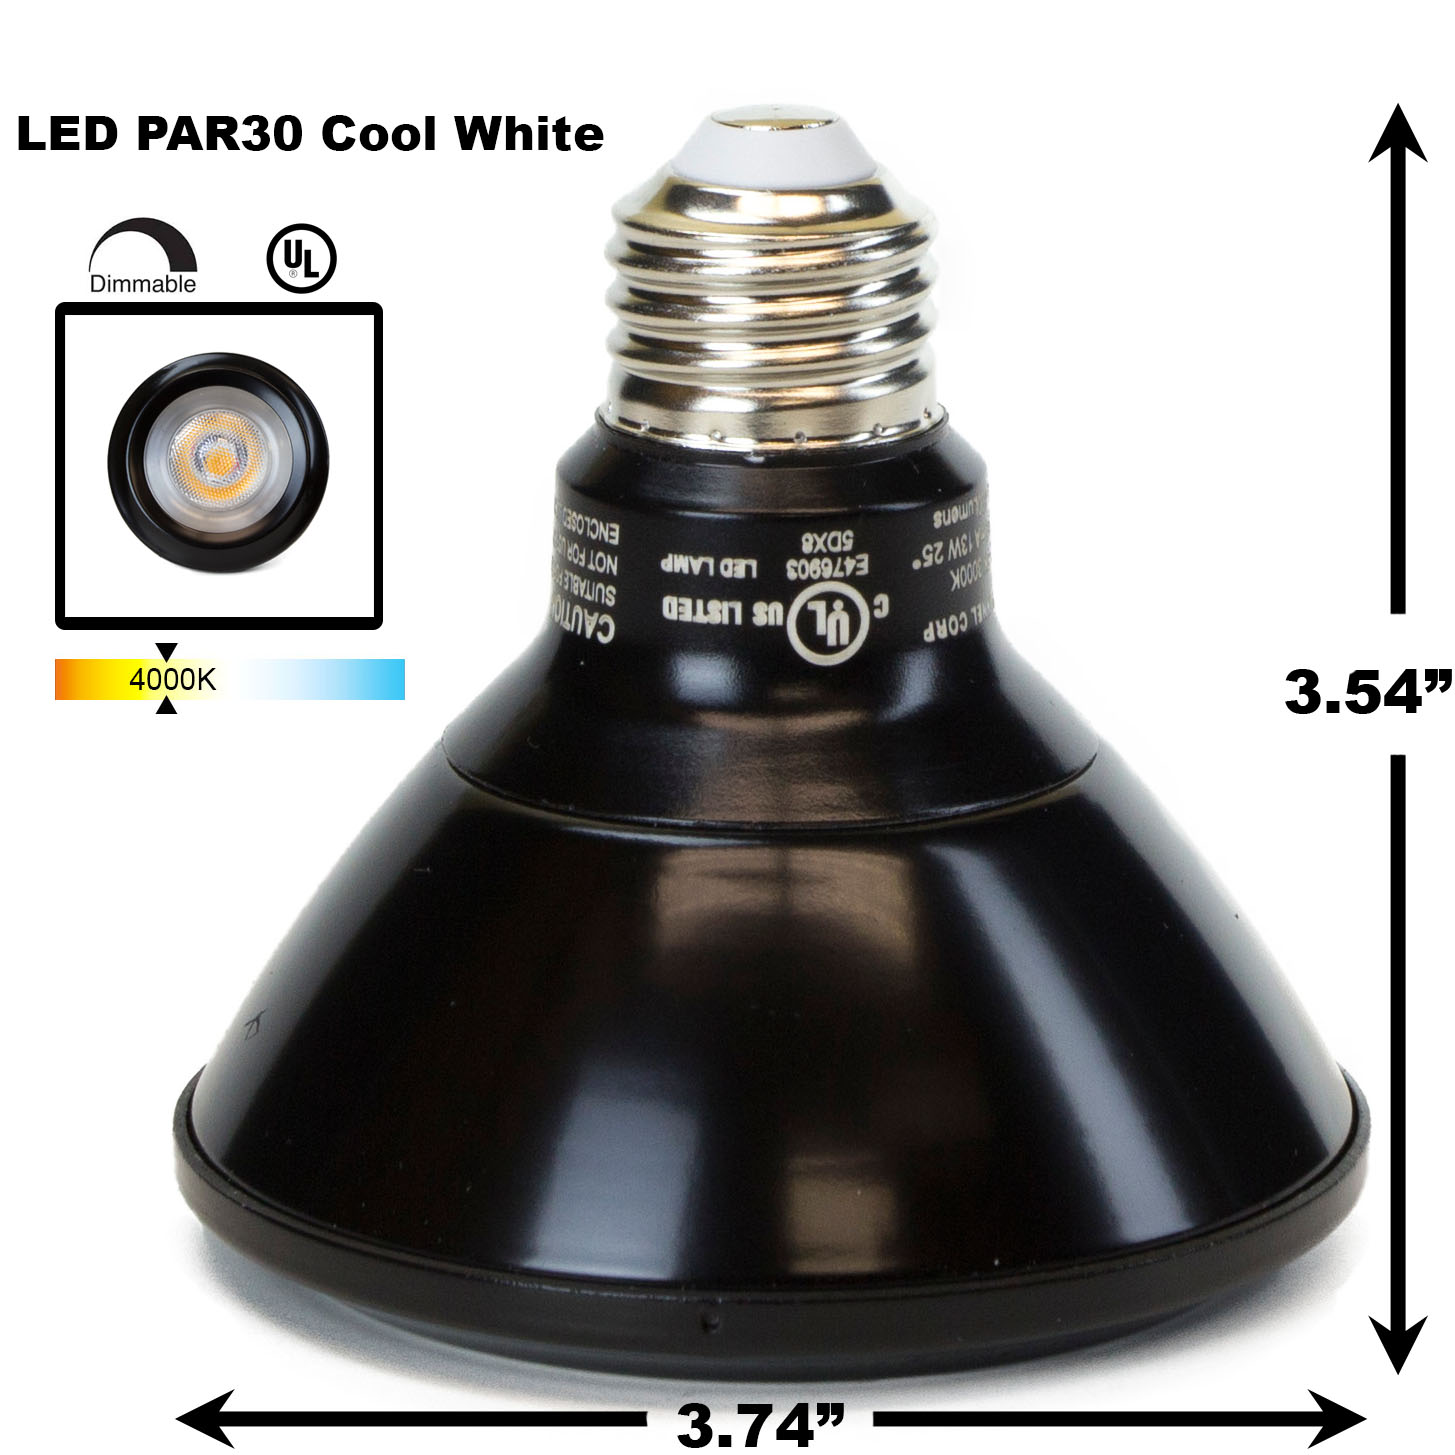 PAR30 LED Light Bulb 13W 4000K Cool White - Black Finish PAR30 LED Bulb, LED Bulbs, Light Bulbs, PAR30, PAR, LED,  Cool White, 4000K, LB-3001-BK-4K